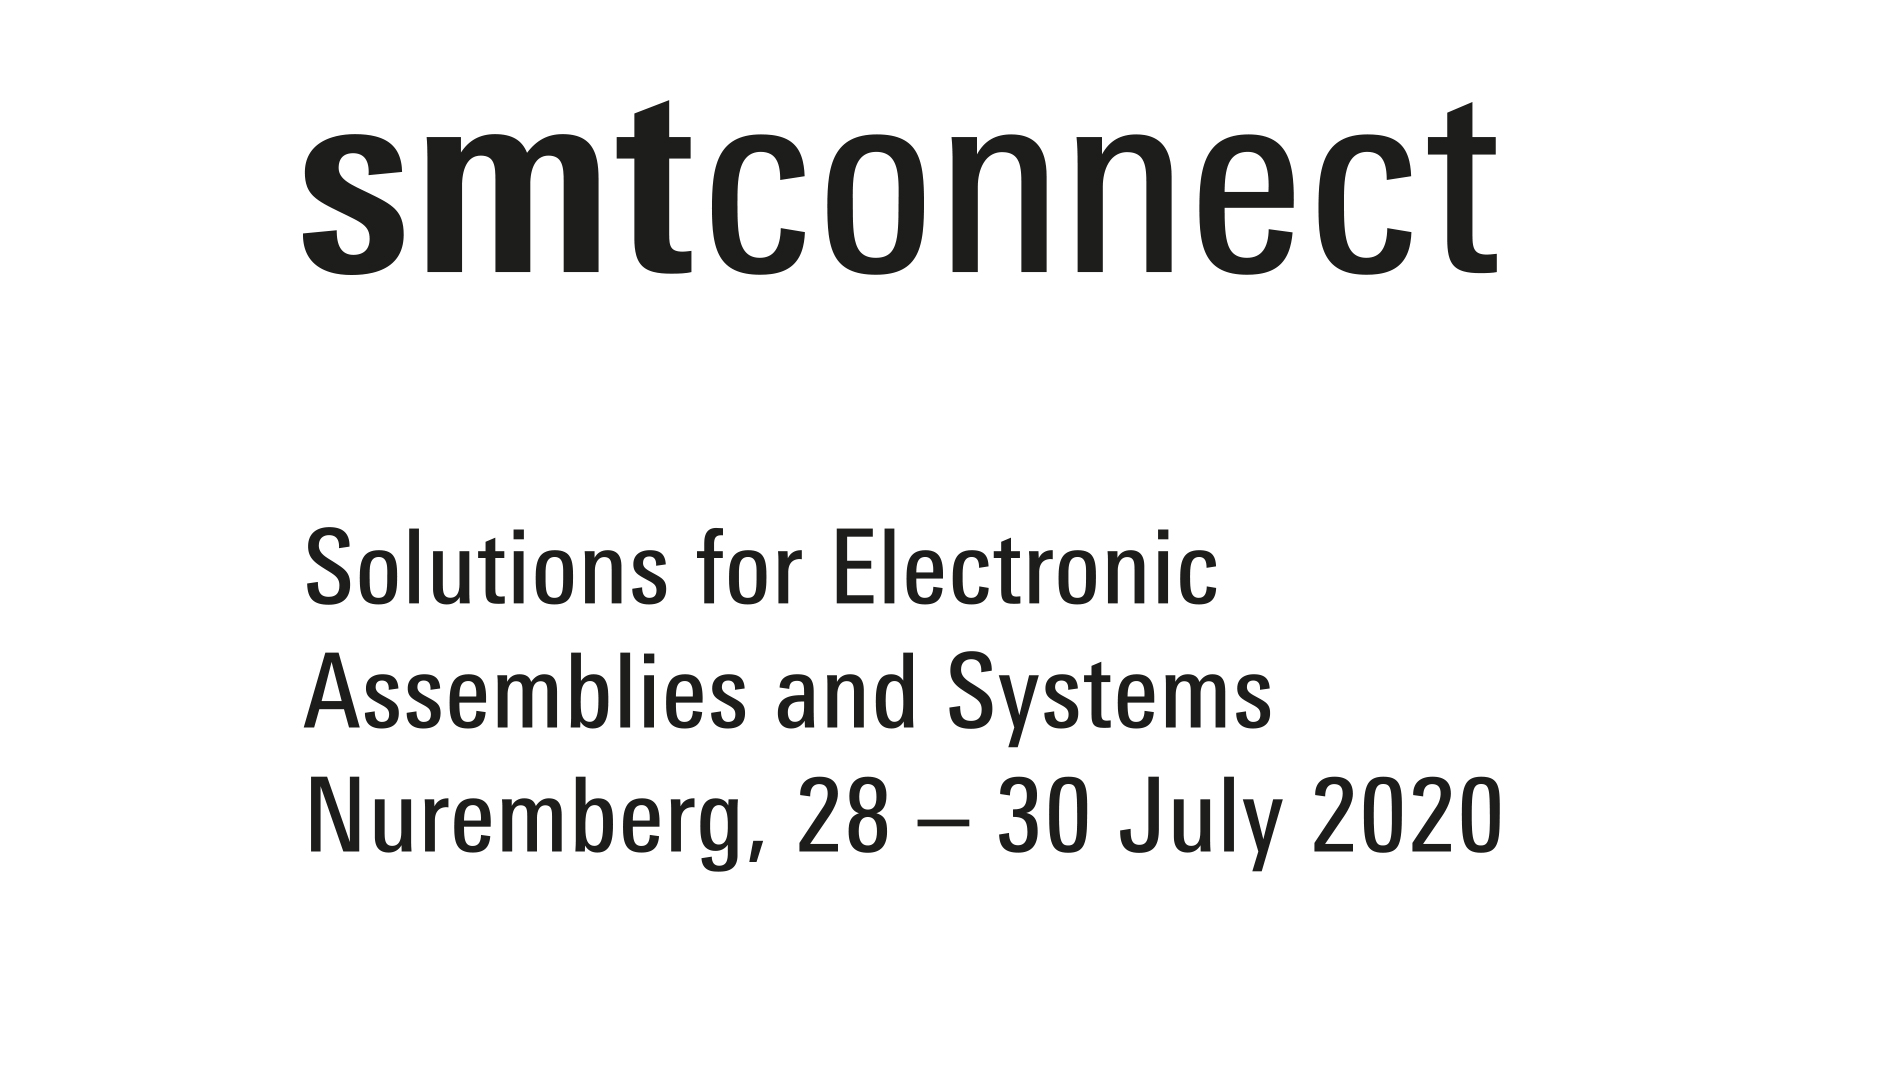 SMTconnect 2020 logo package different versions, black and white